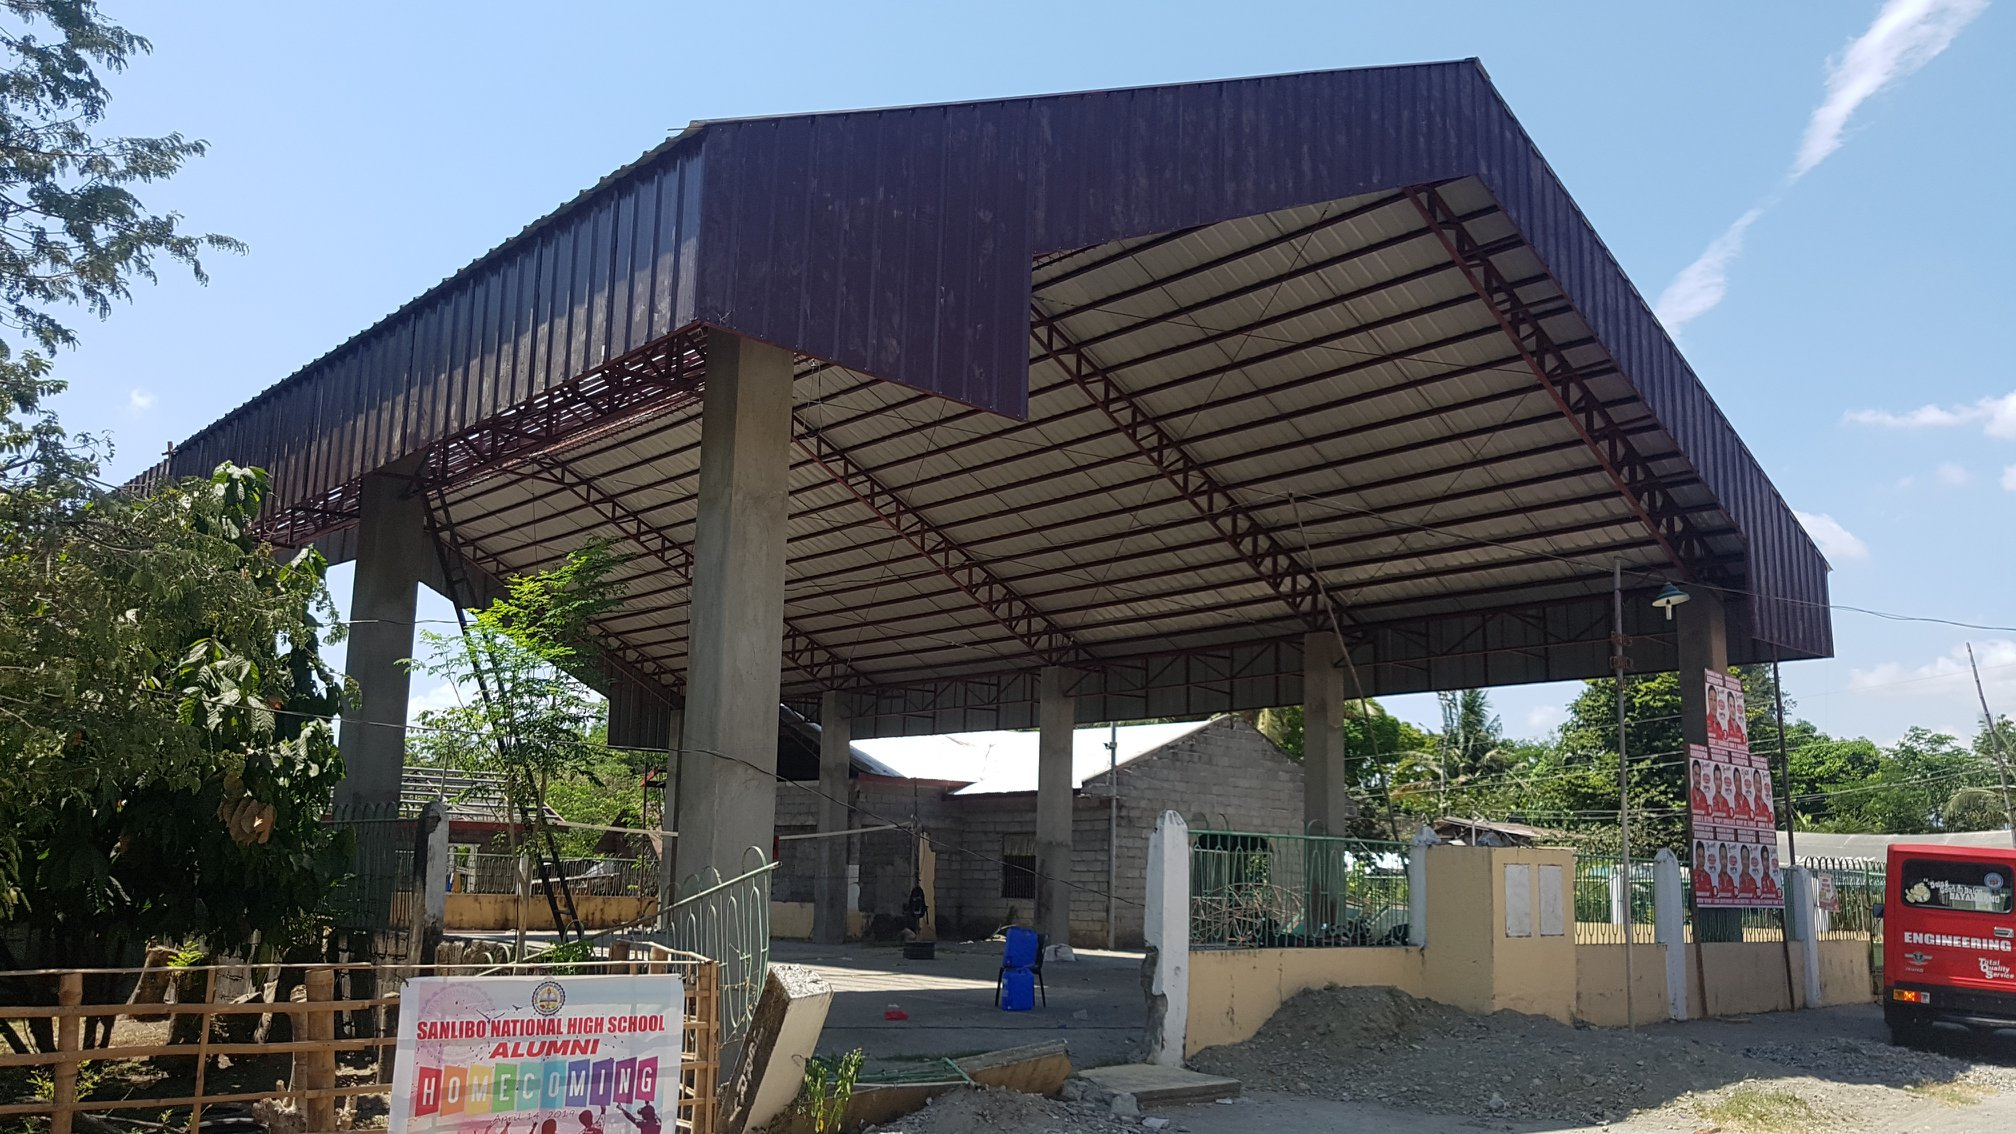 COMPLETED: Construction of Covered Courts in Brgy. Idong, Malimpec, Sanlibo, Malioer, Pugo, Wawa, and more…